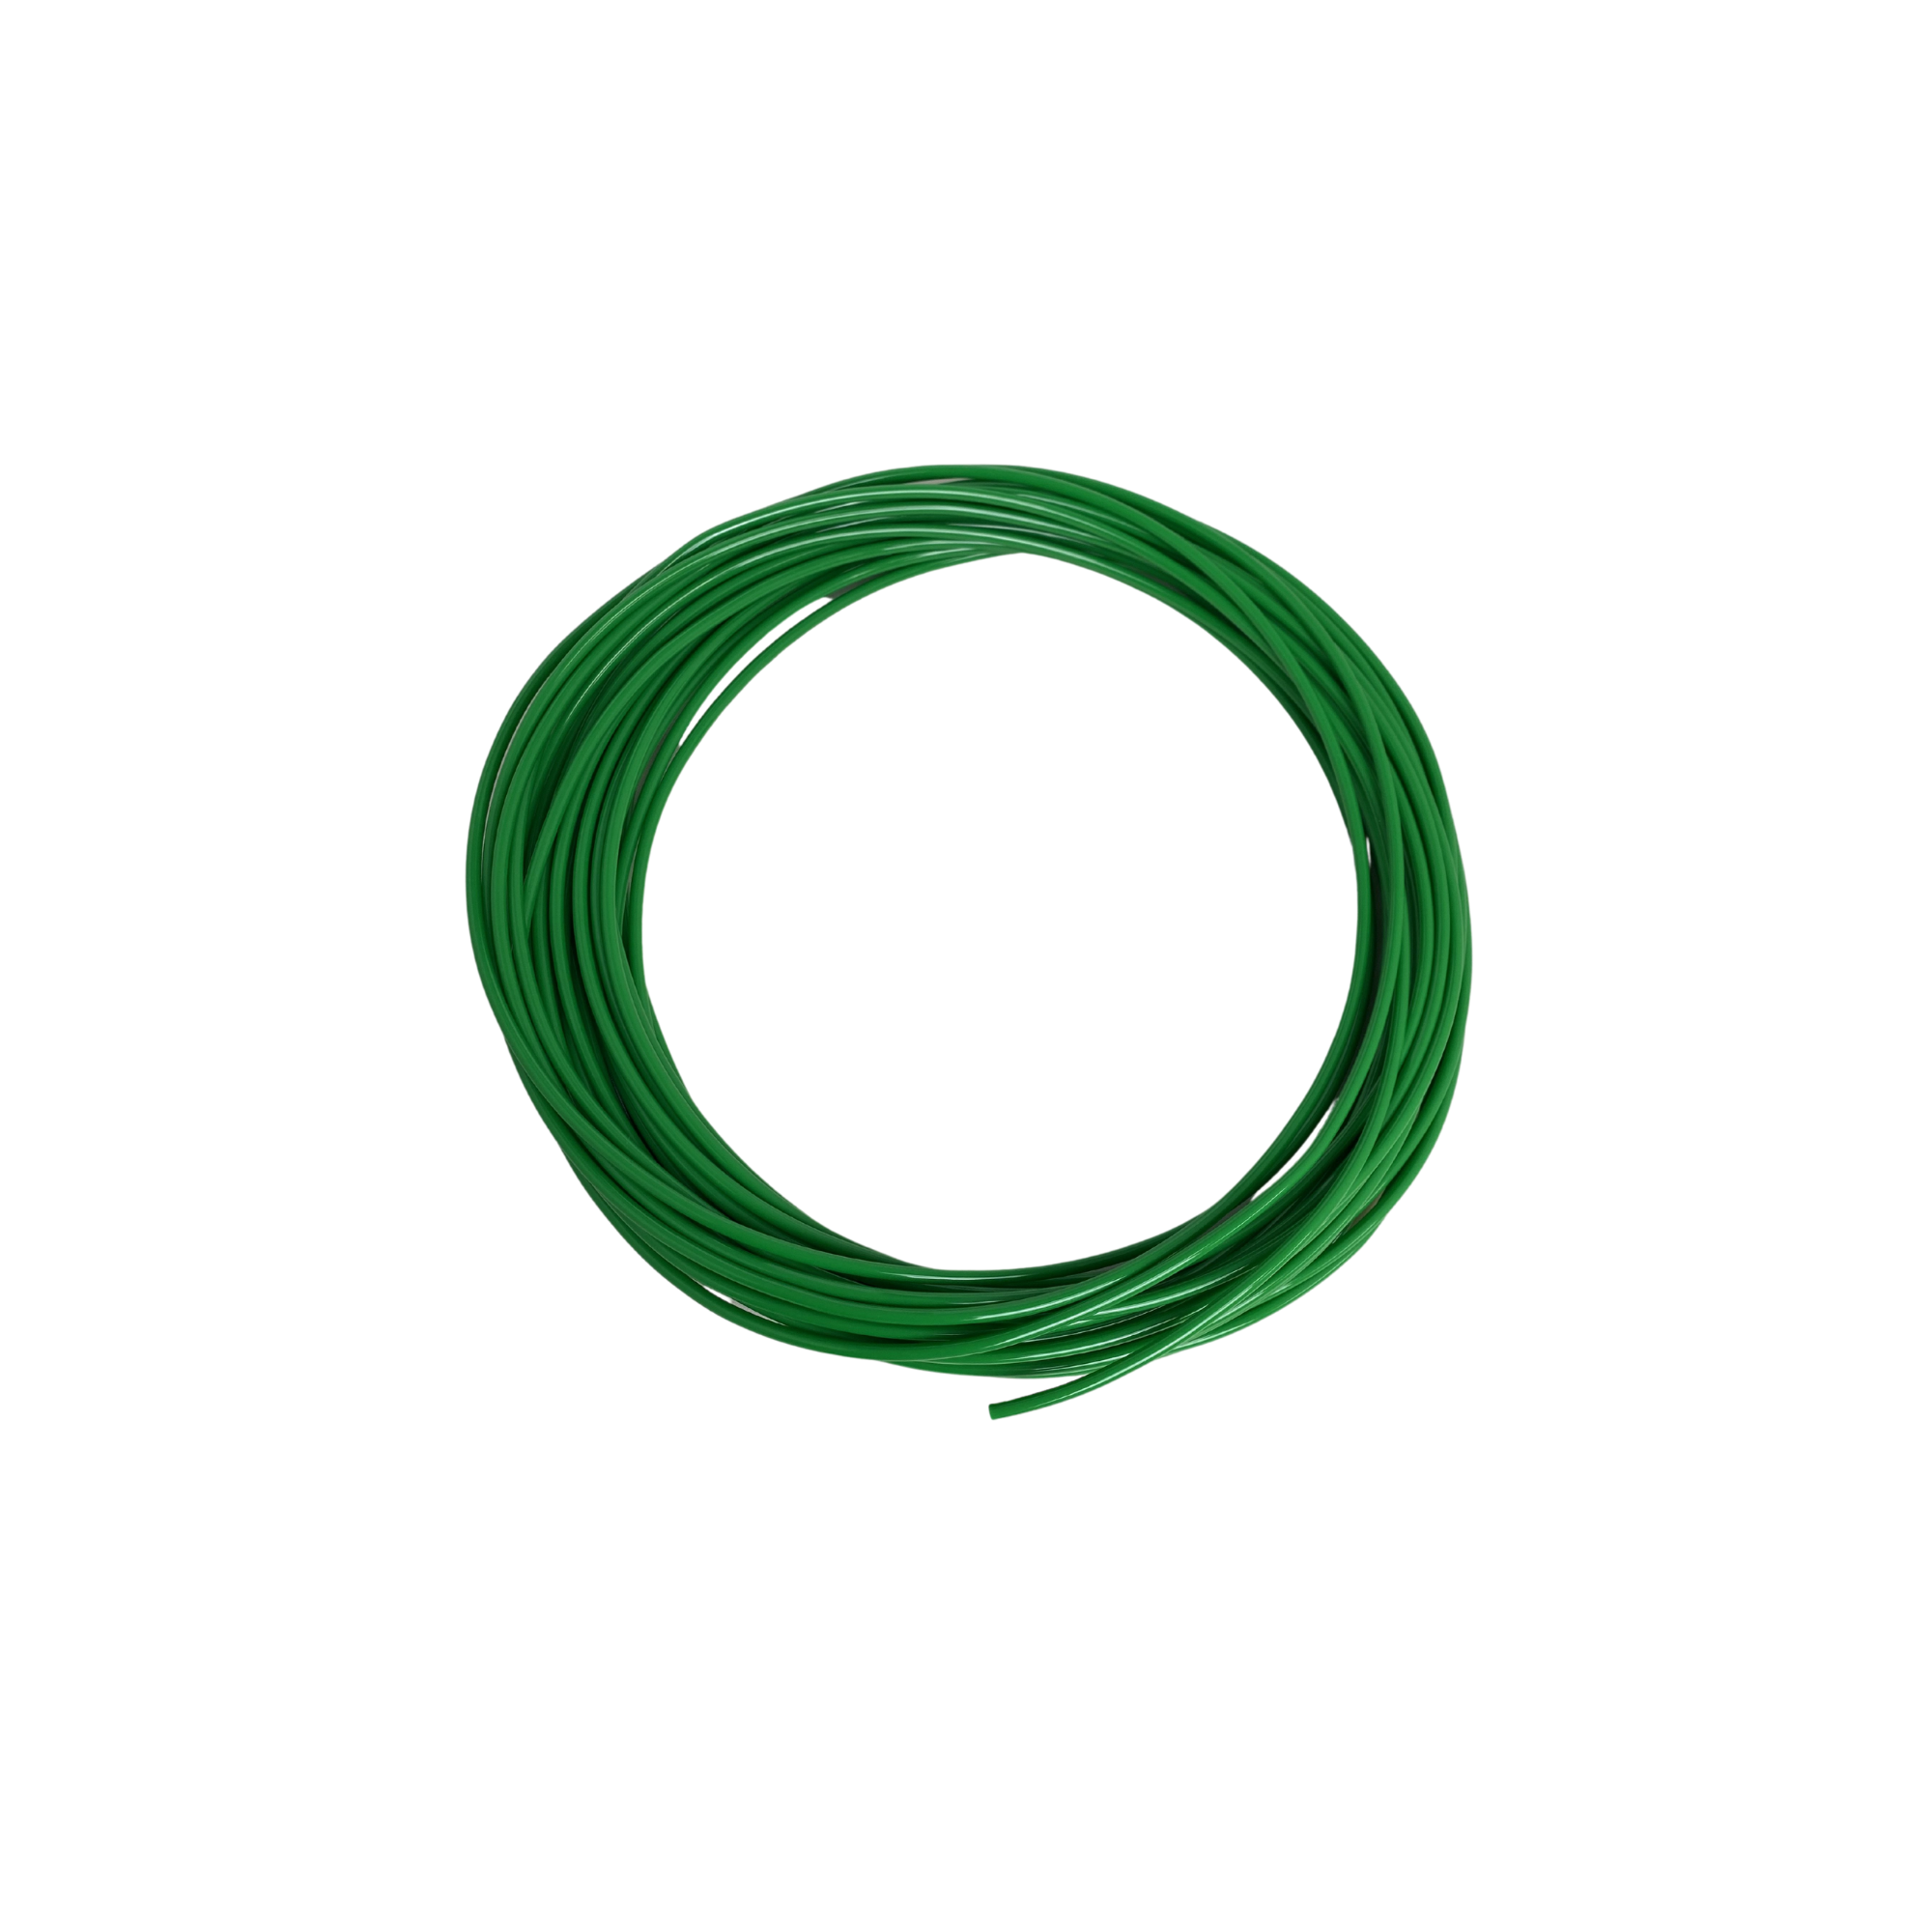 Green Plastic air tubing